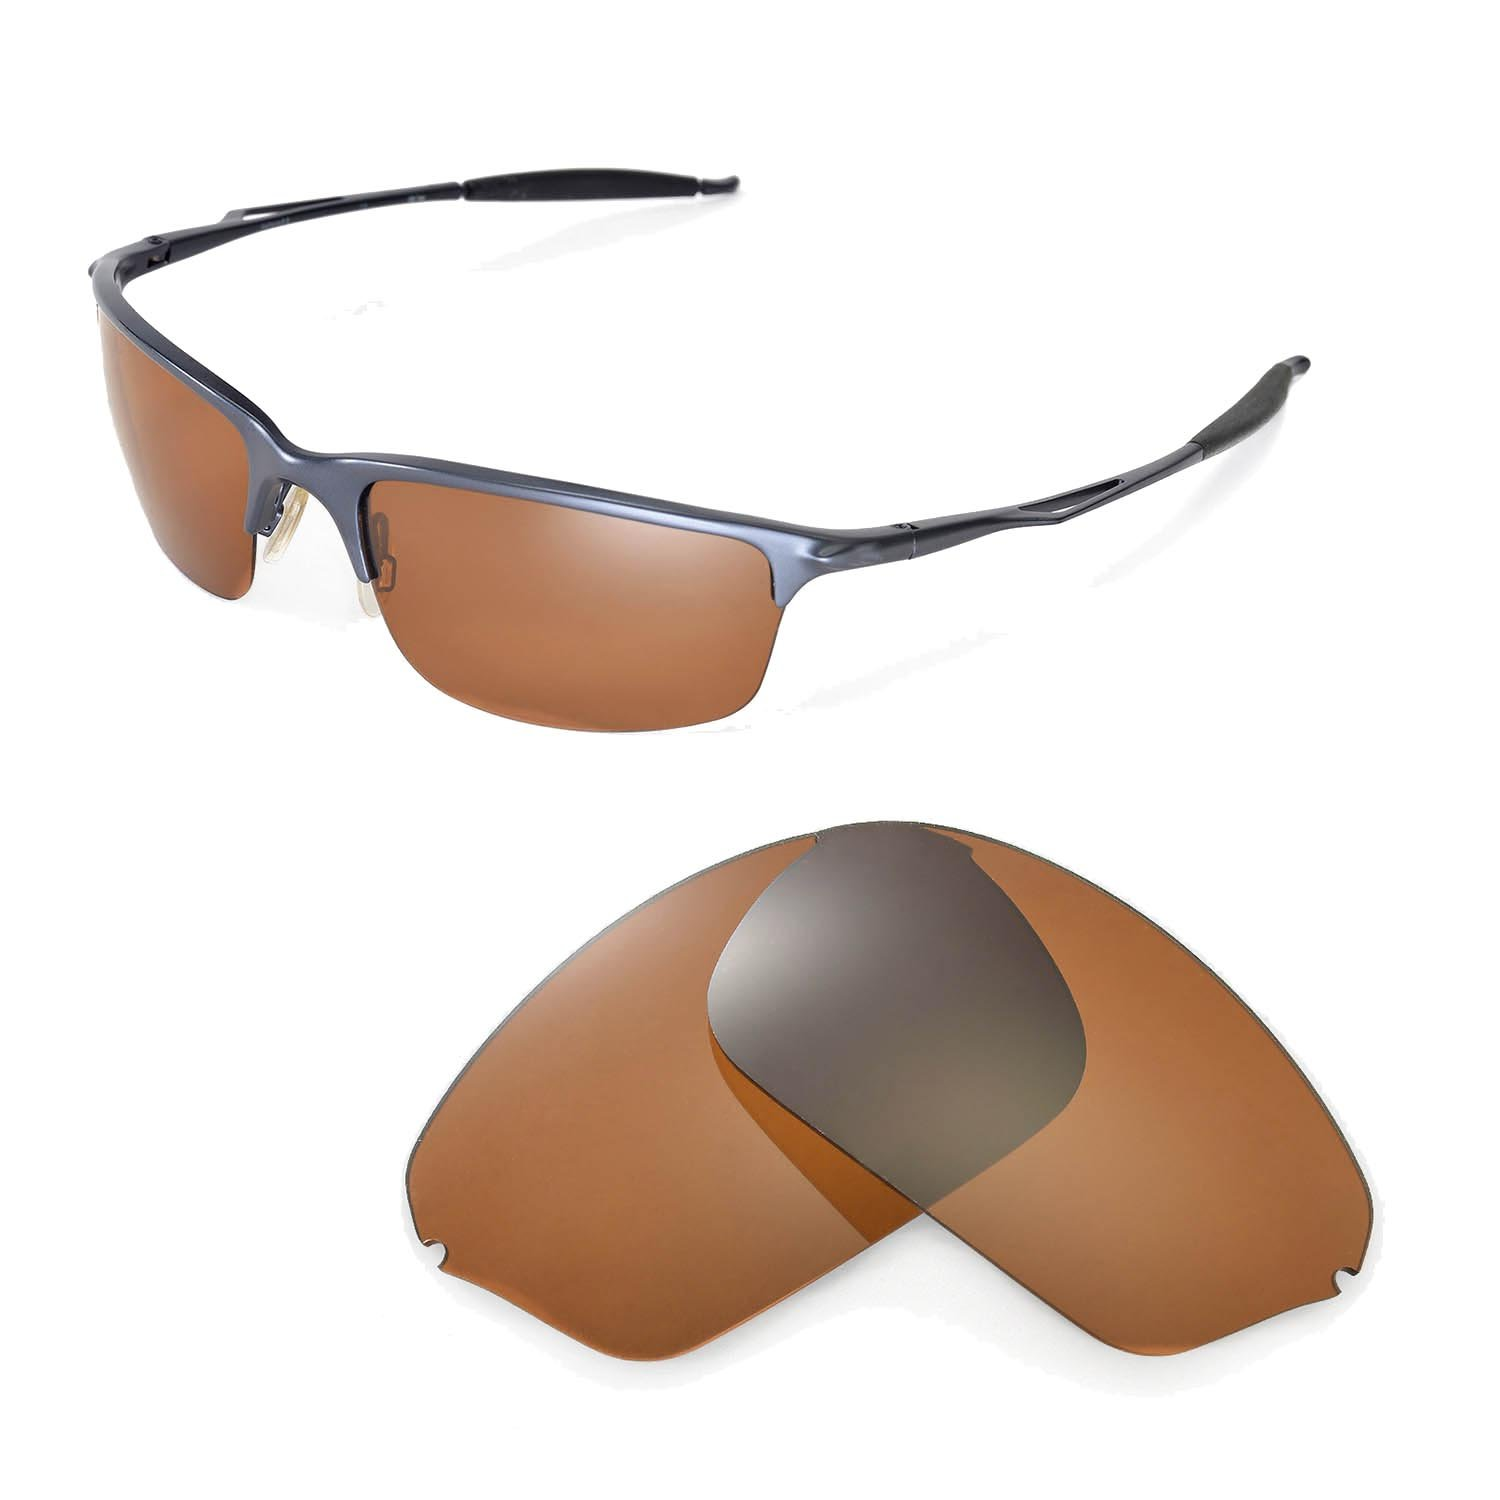 ae43c38a7f Galleon - Walleva Replacement Lenses For Oakley Half Wire 2.0 Sunglasses  -Multiple Options Available (Brown - Polarized)